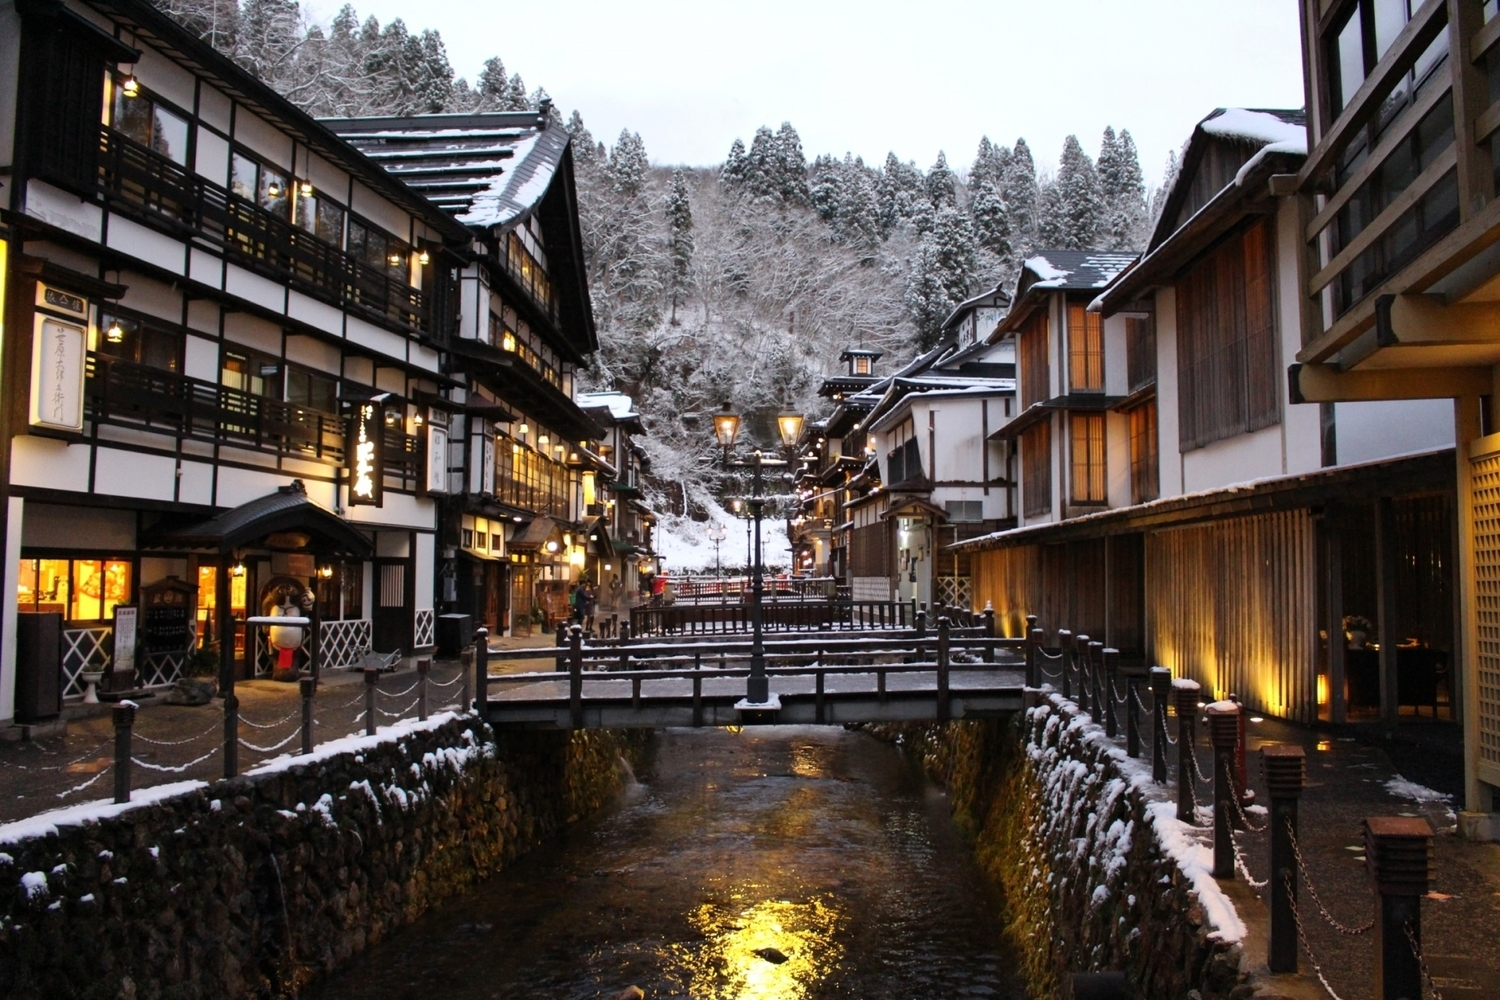 7 top places to visit in Tohoku region